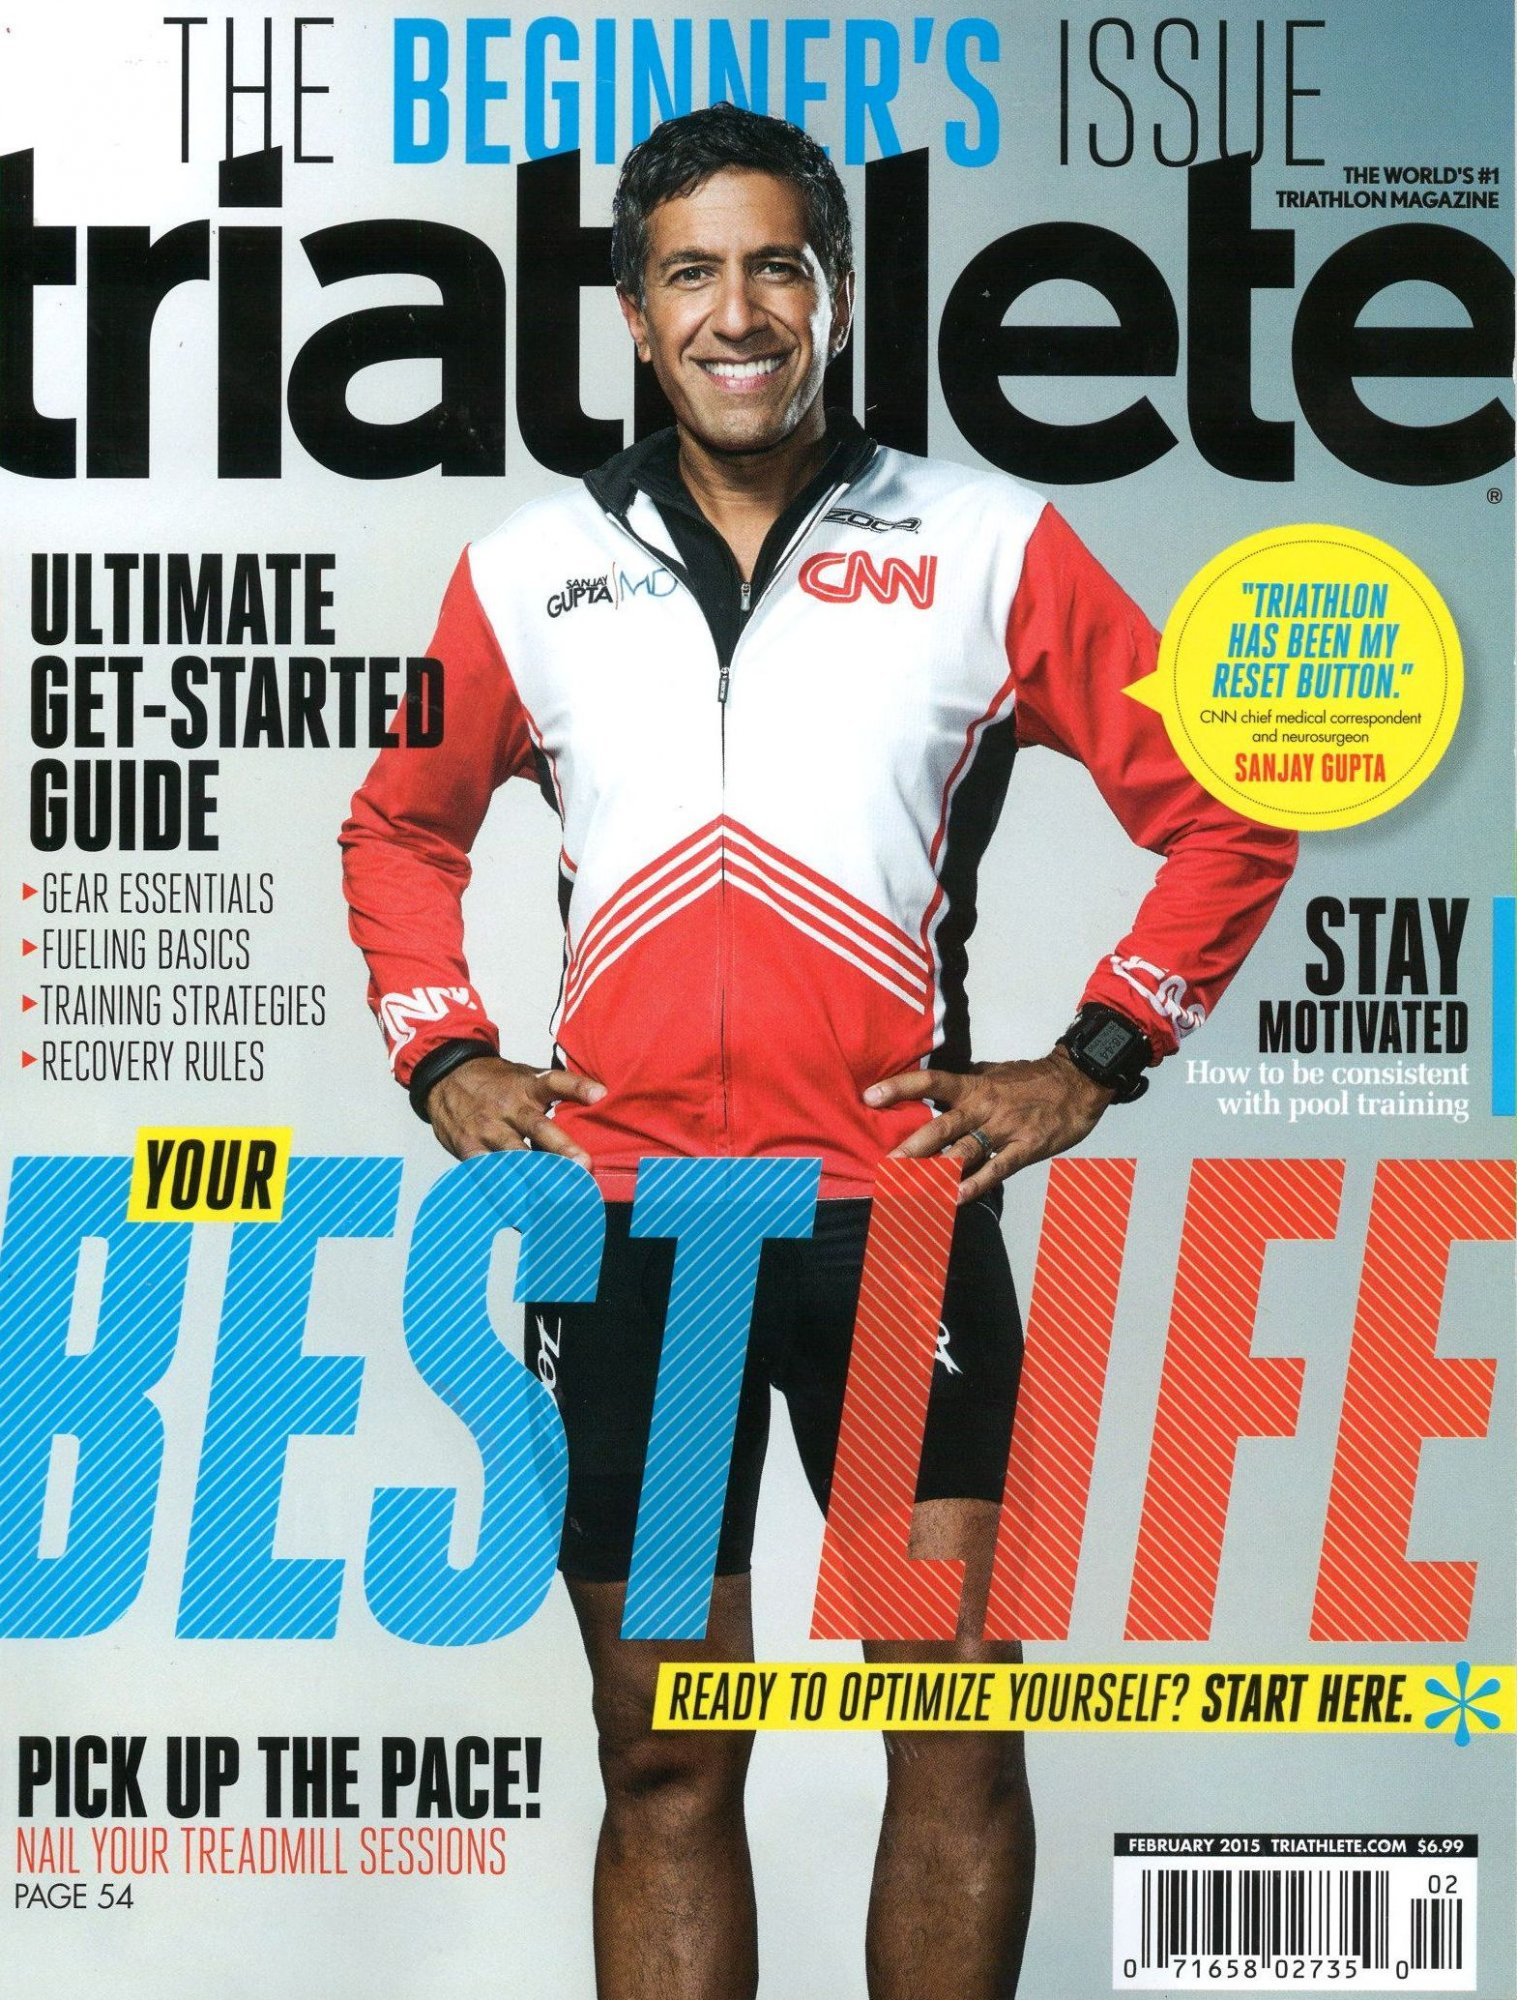 February 2015 Triathlete Cover